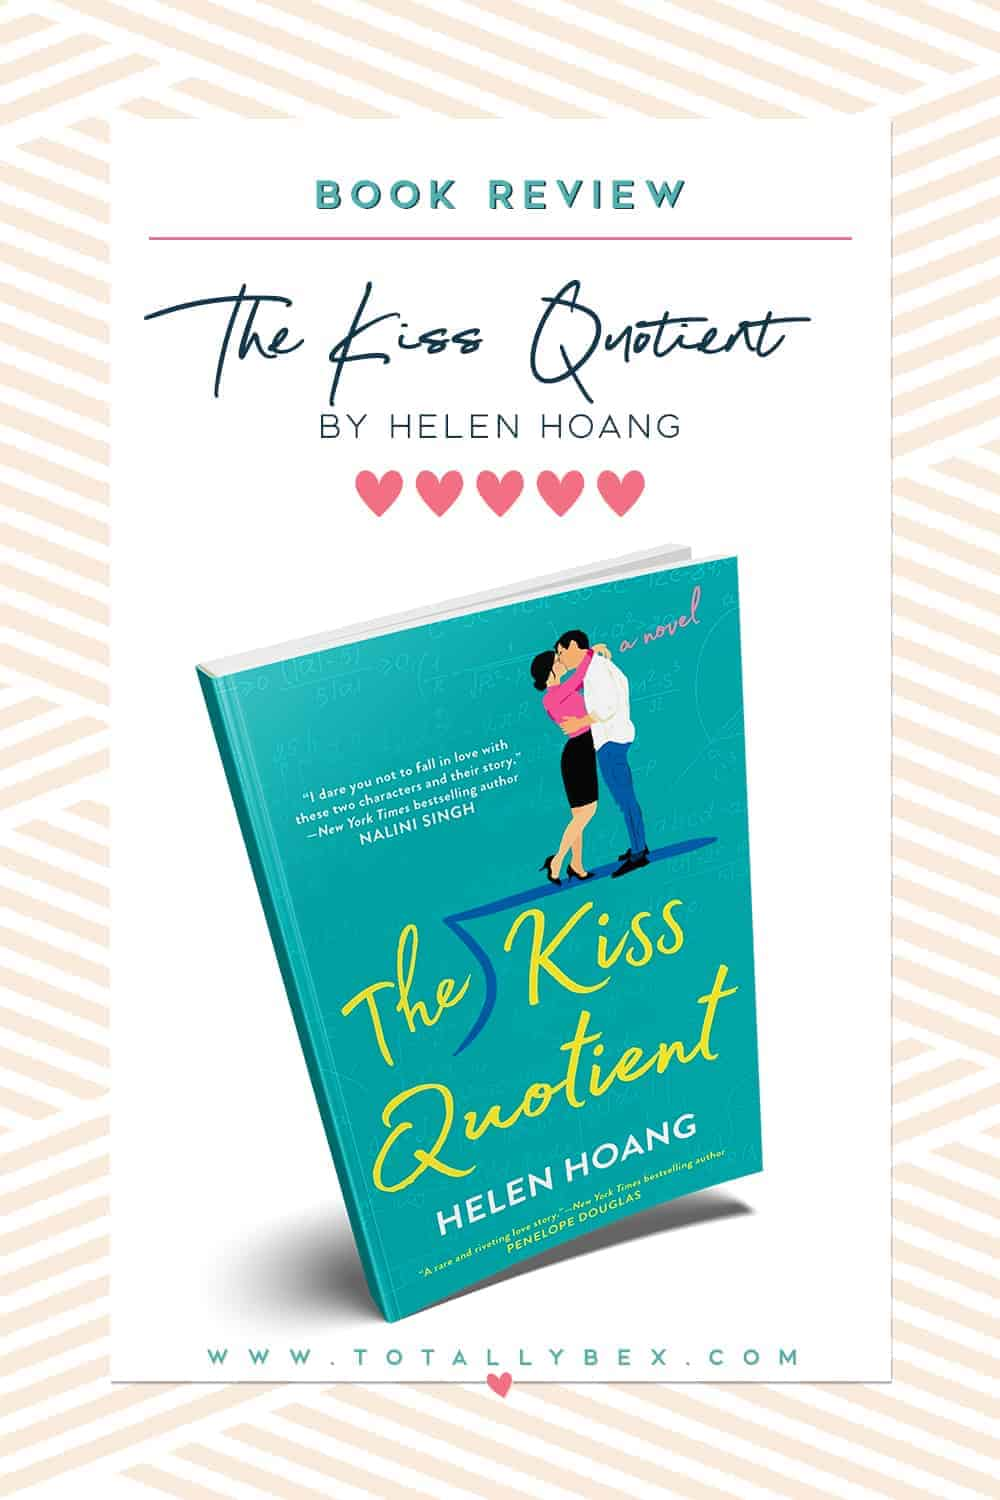 The Kiss Quotient - book review